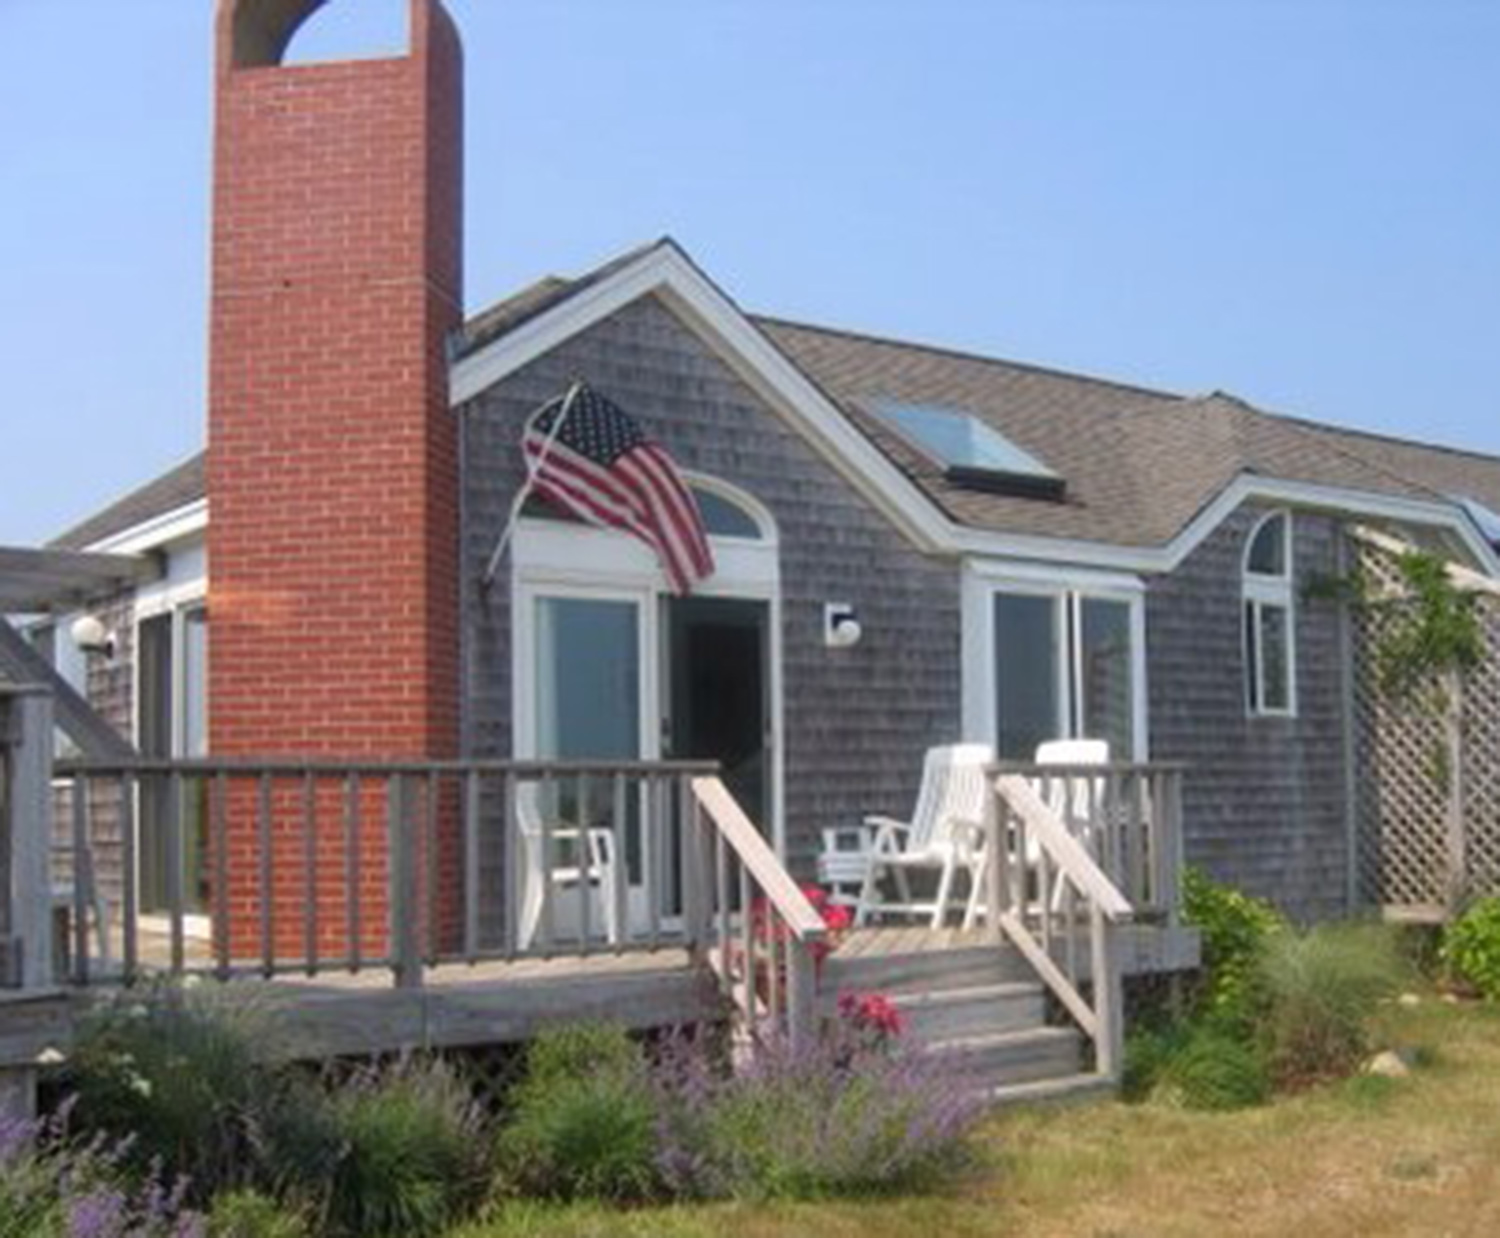 Aquinnah Martha's Vineyard MA Homes for Sale